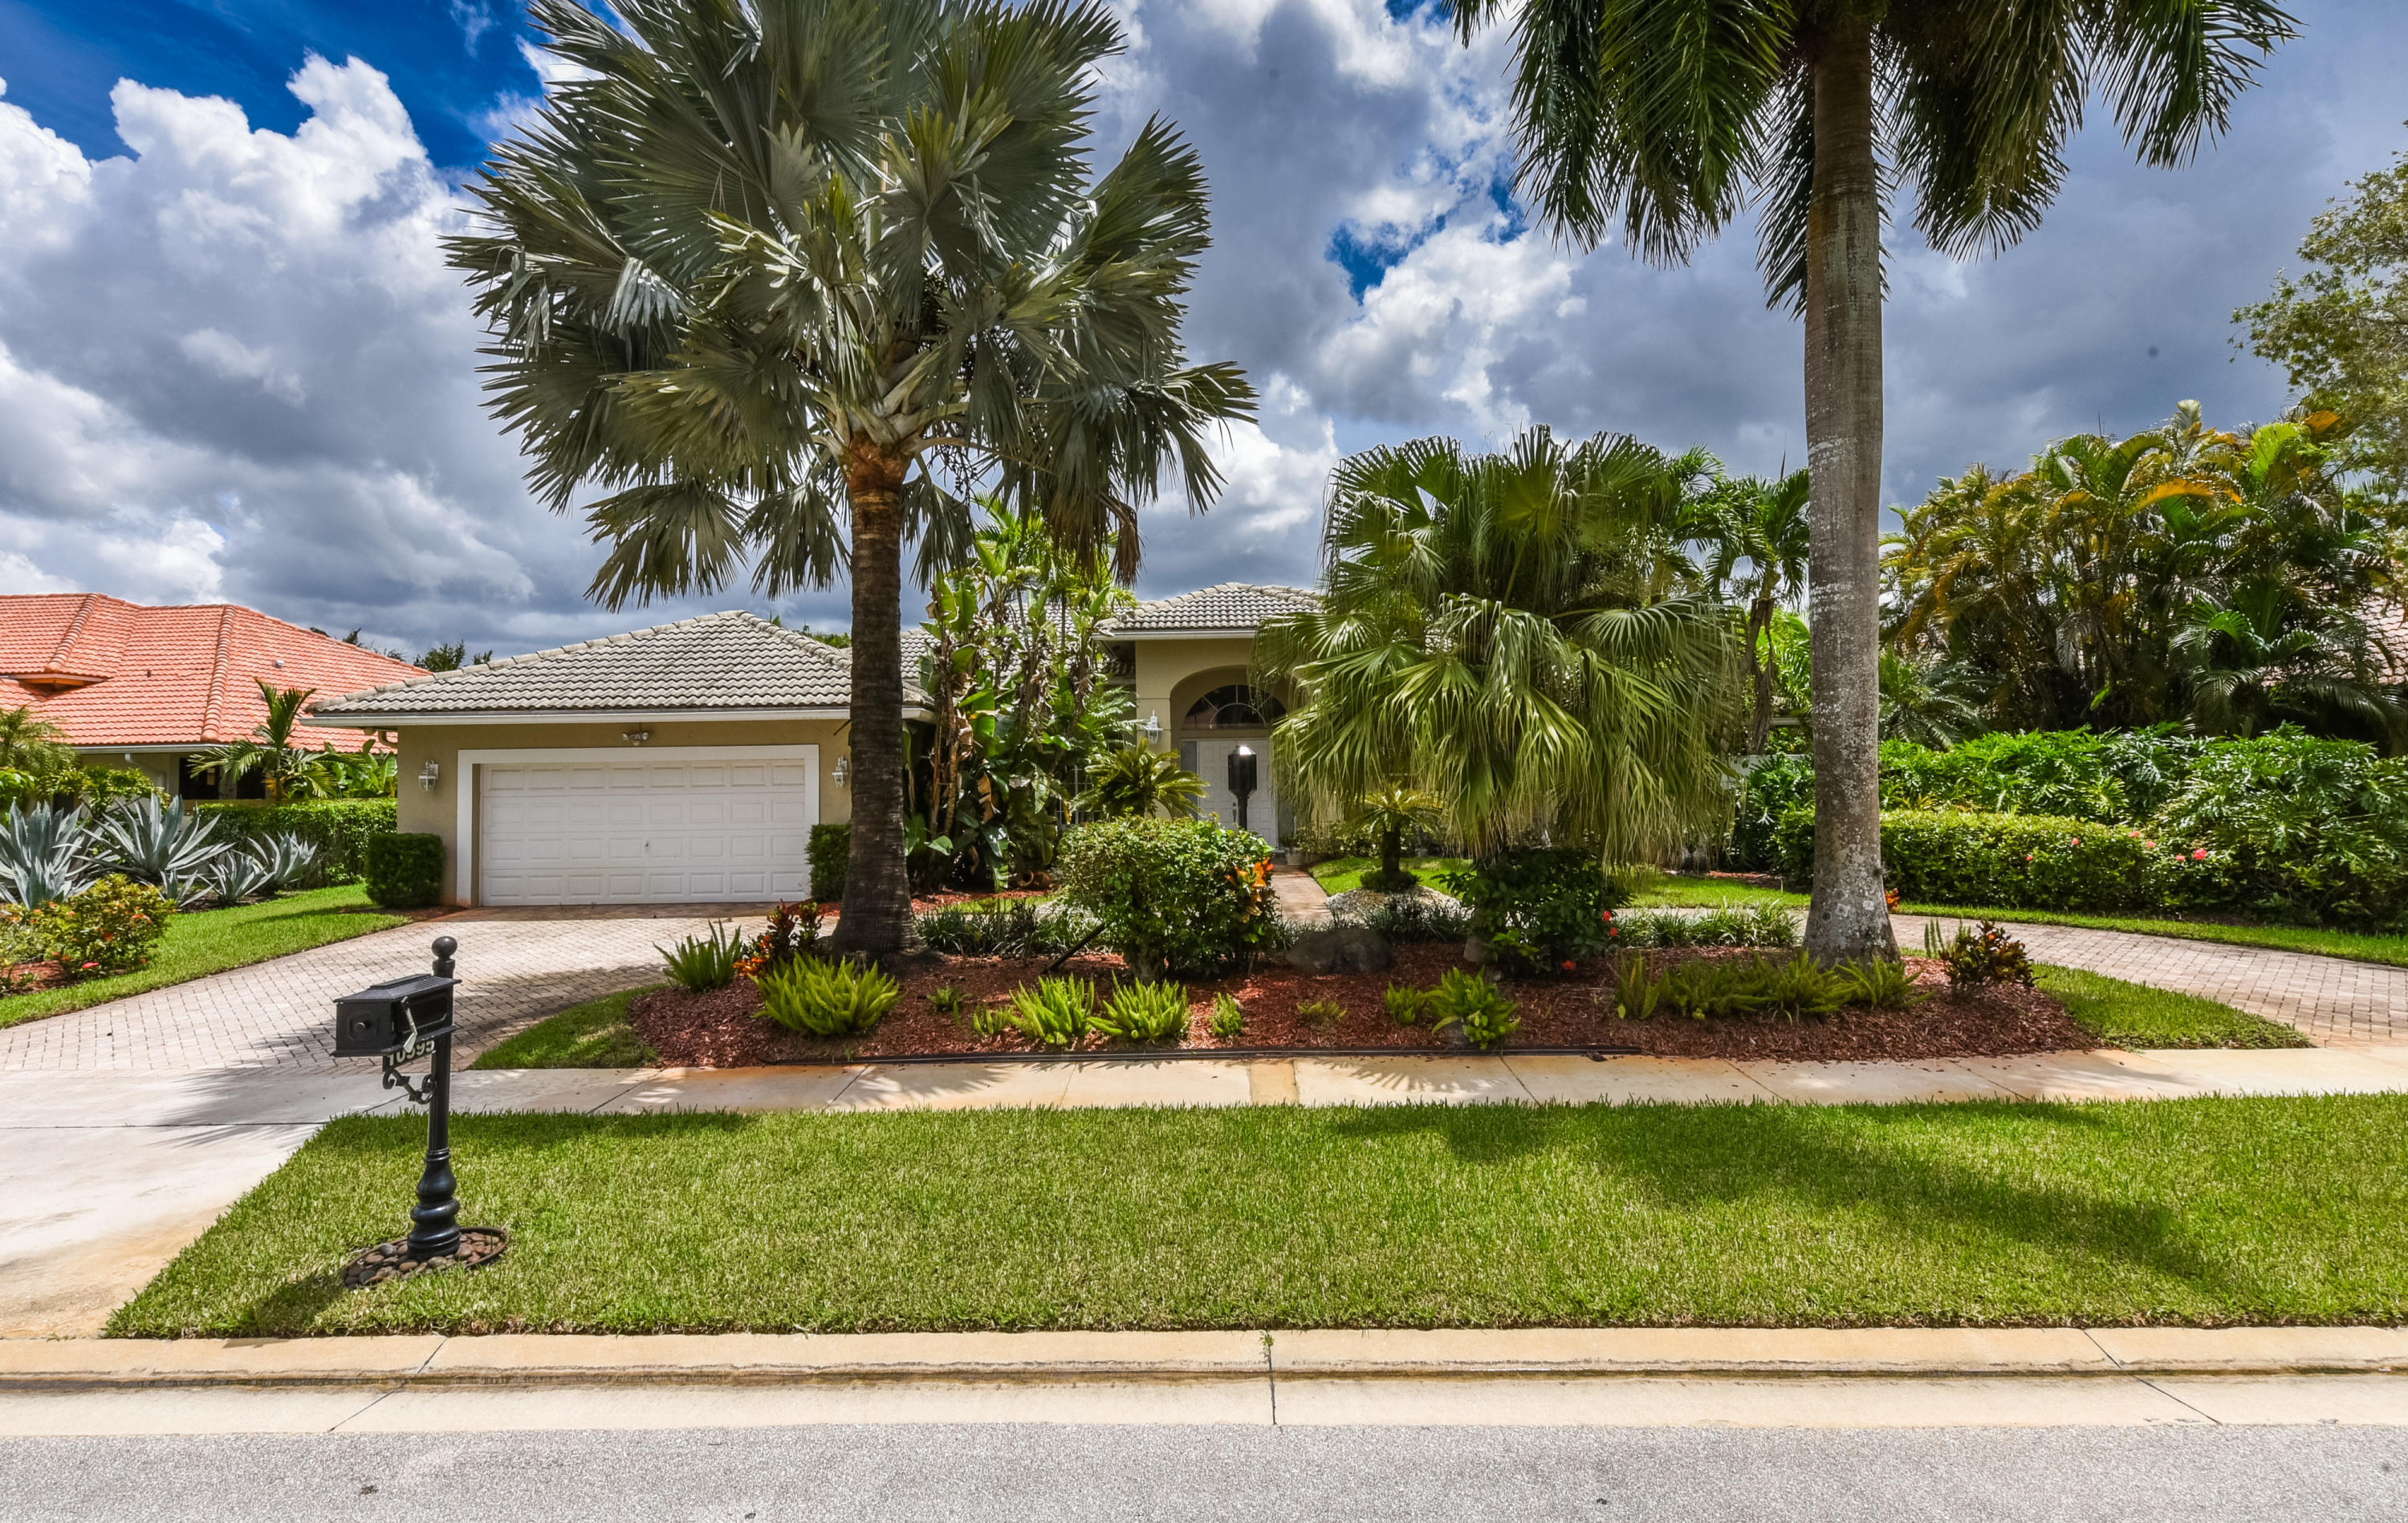 Photo of 10595 Stonebridge Boulevard, Boca Raton, FL 33498